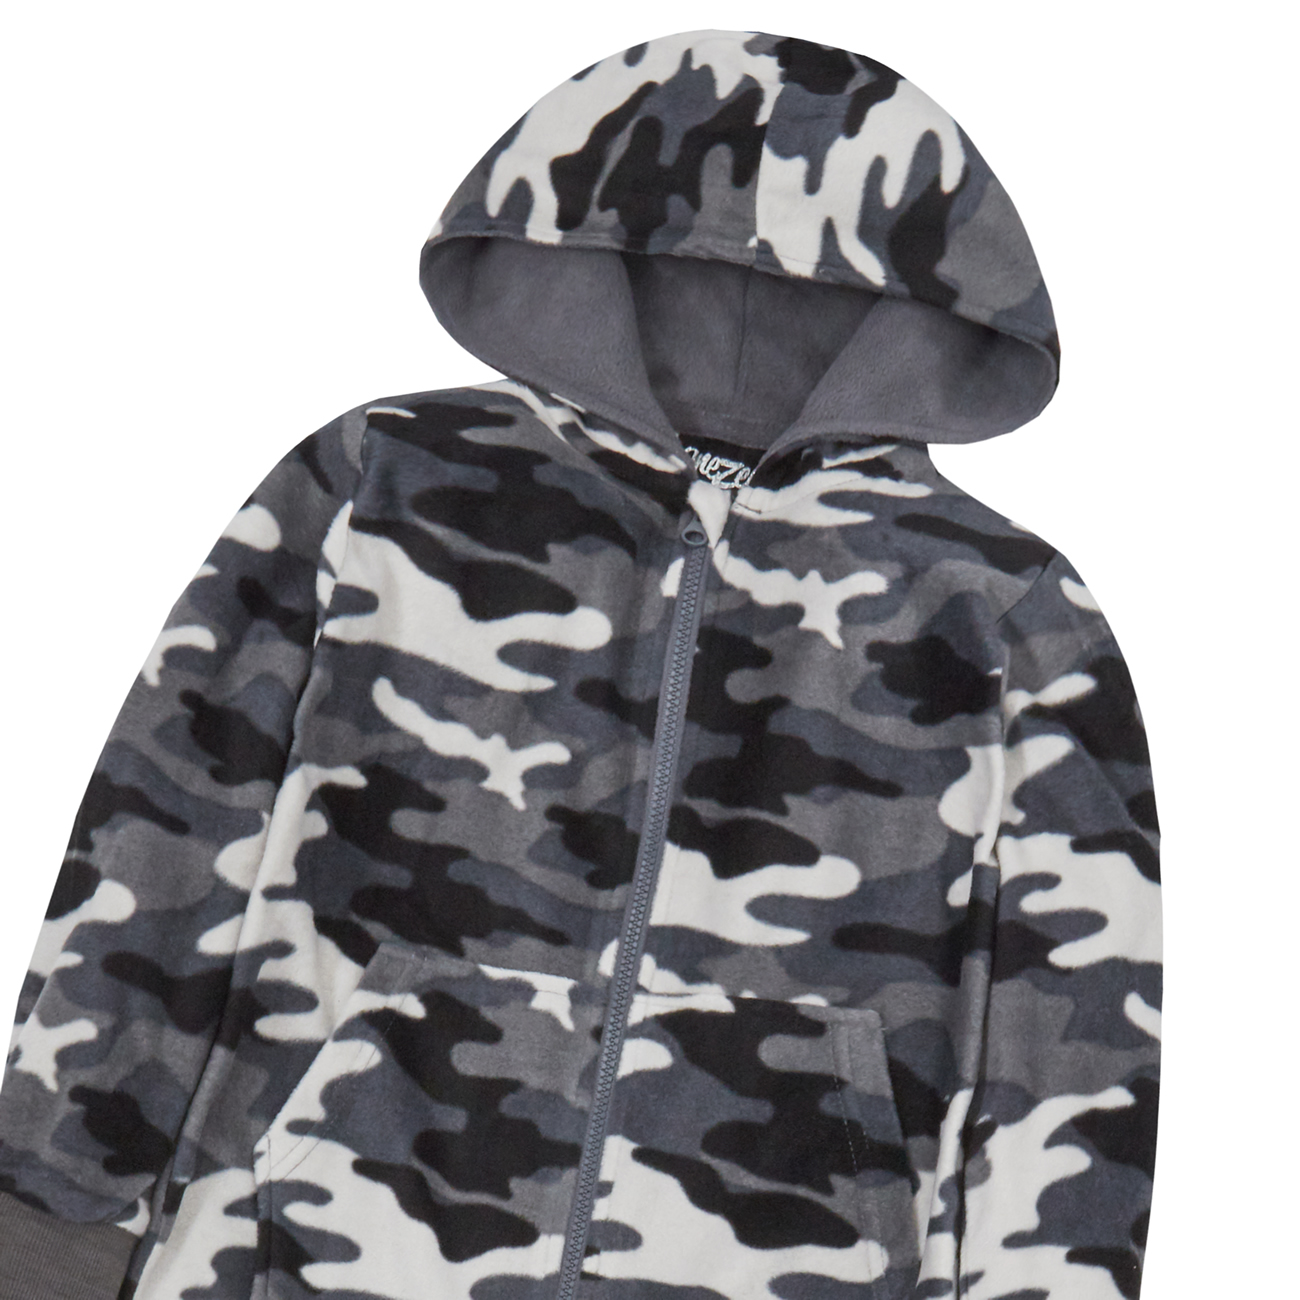 Kids Army Camo Print 1Onesie Hooded Jumpsuit All in One Boys Fleece Camouflage